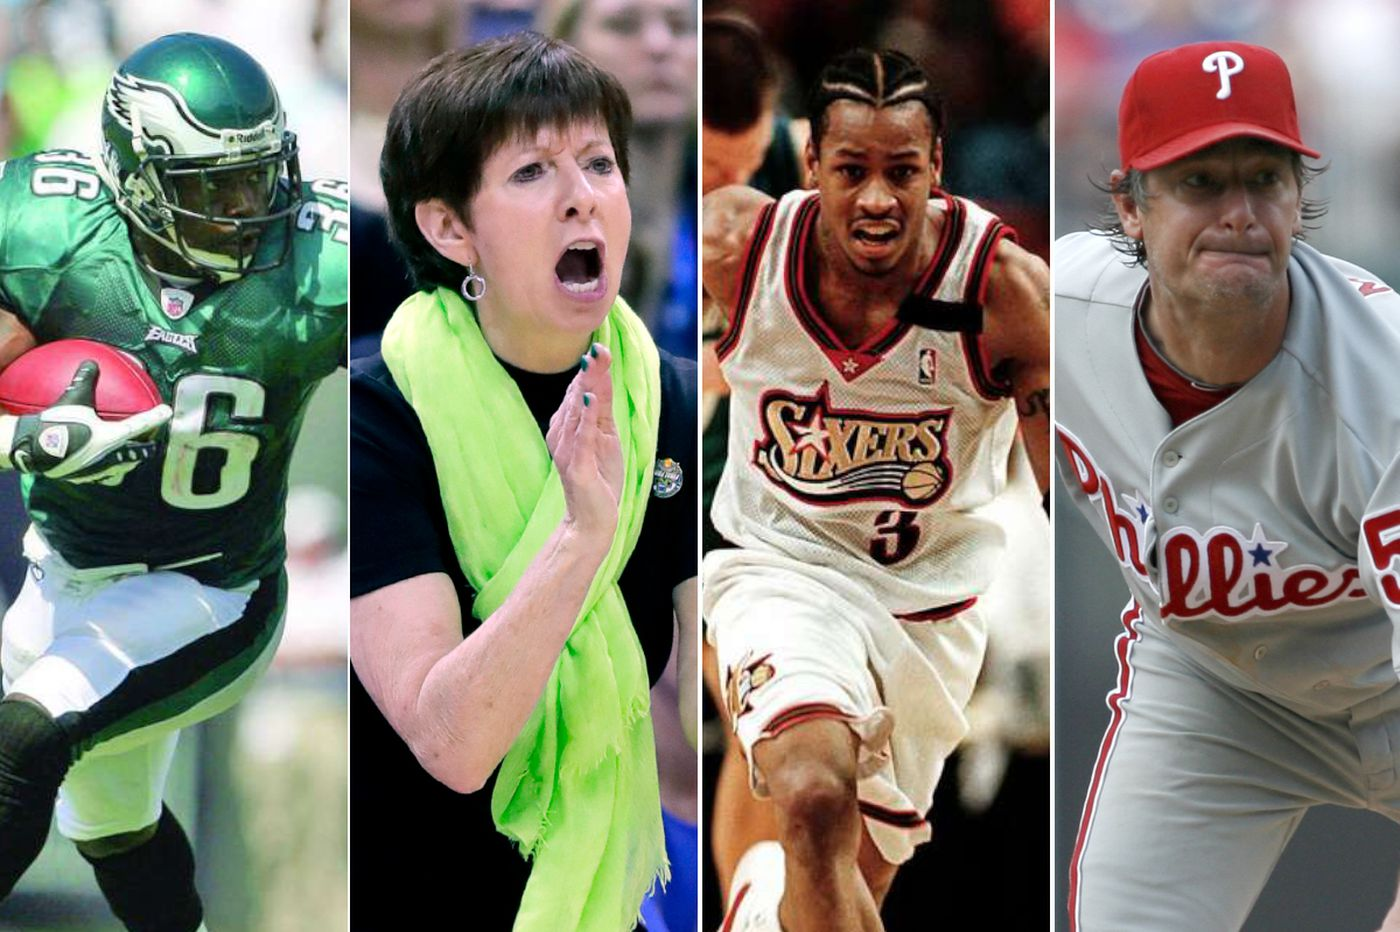 Allen Iverson, Brian Westbrook, Muffet McGraw headline 2018 Philly Sports Hall of Fame class